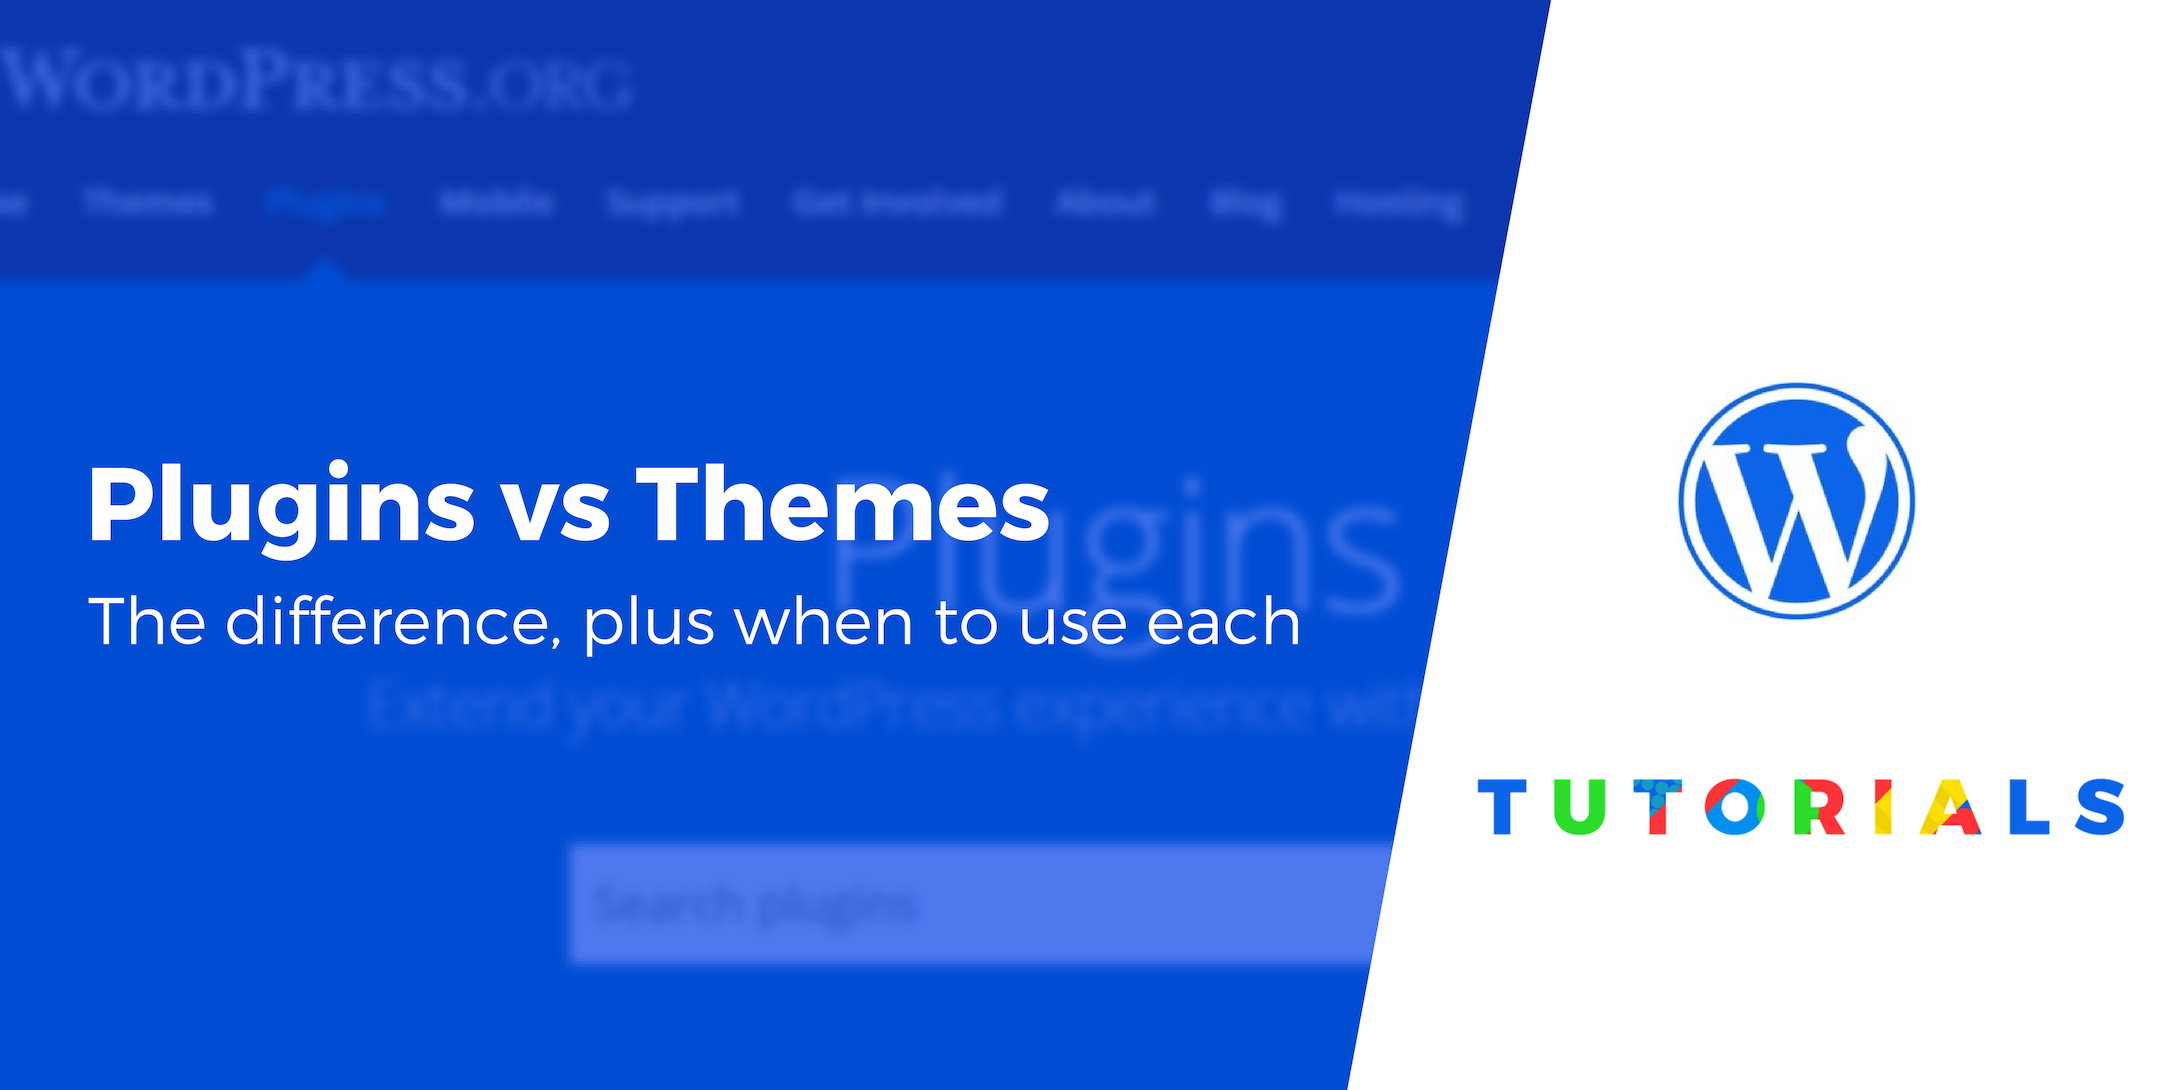 WordPress plugins vs themes